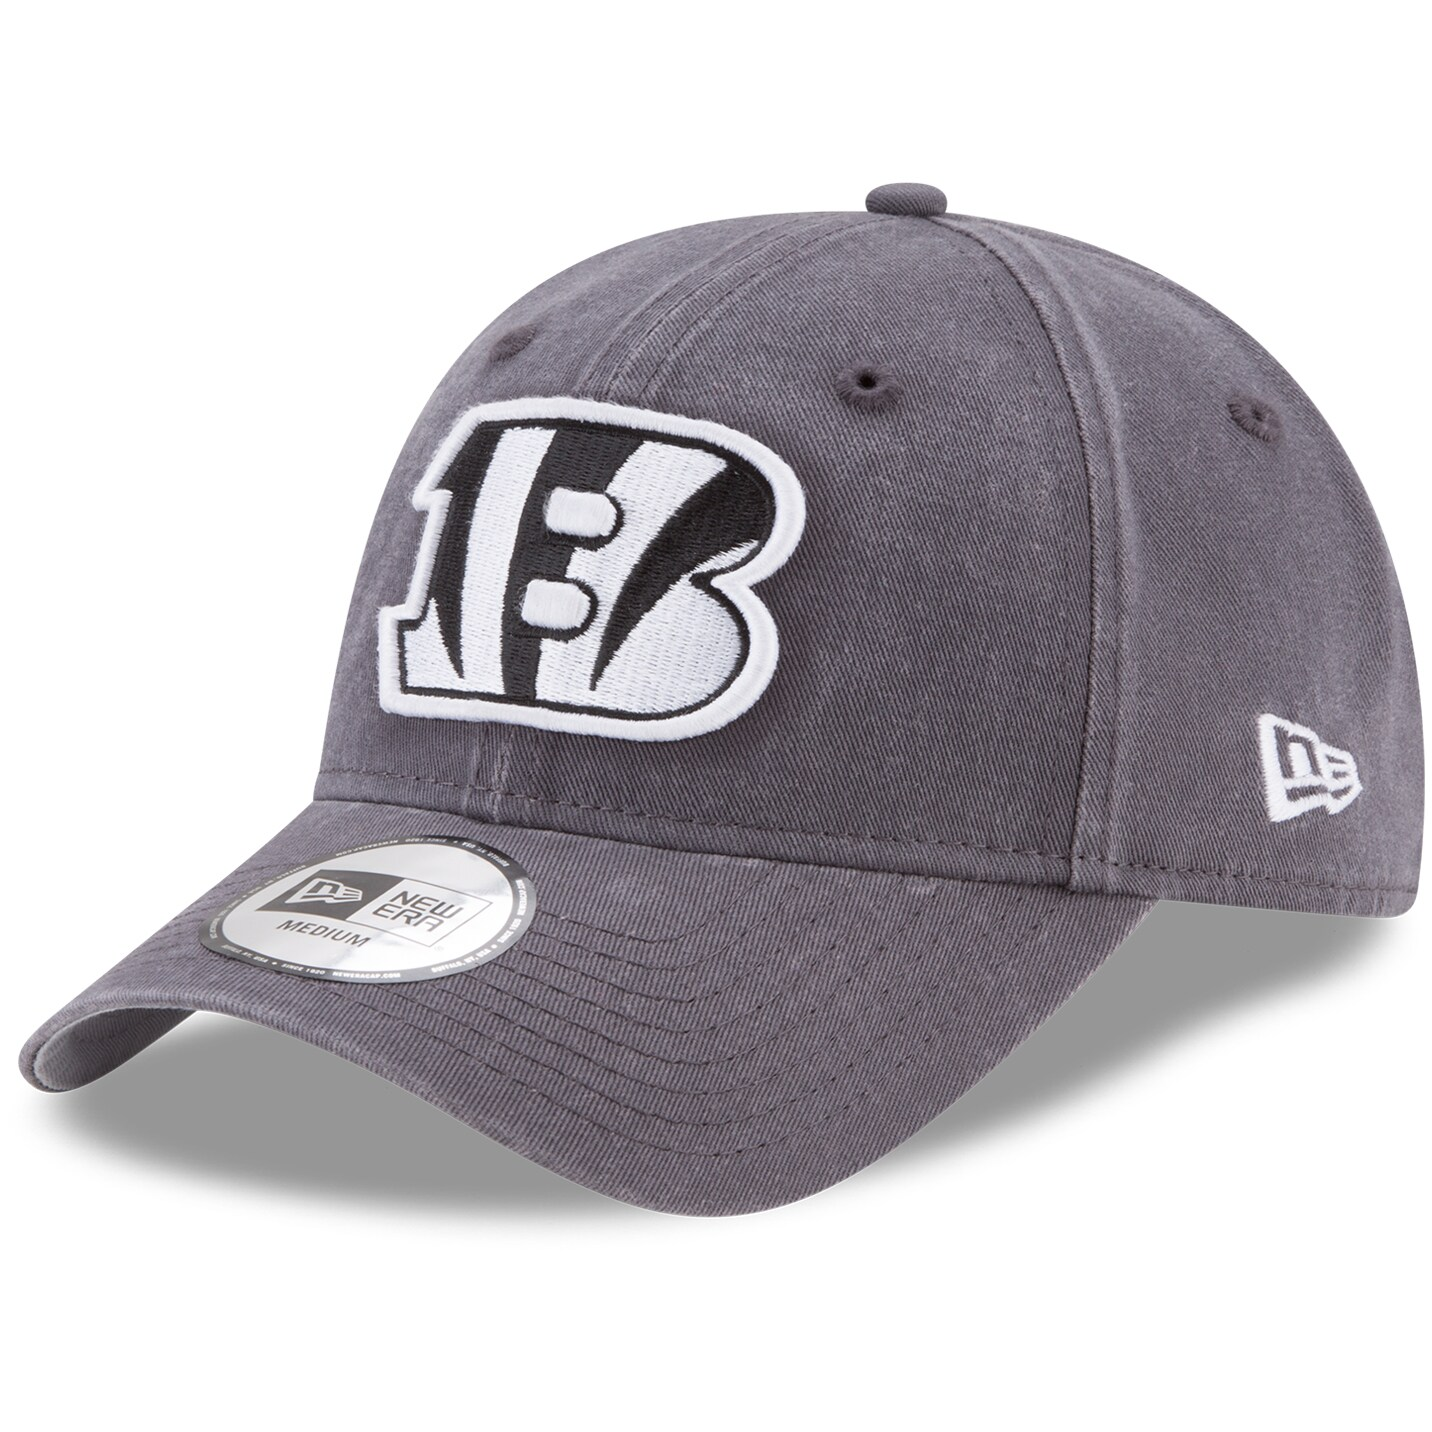 Cincinnati Bengals New Era Sagamore Relaxed 49FORTY Fitted Hat - Charcoal